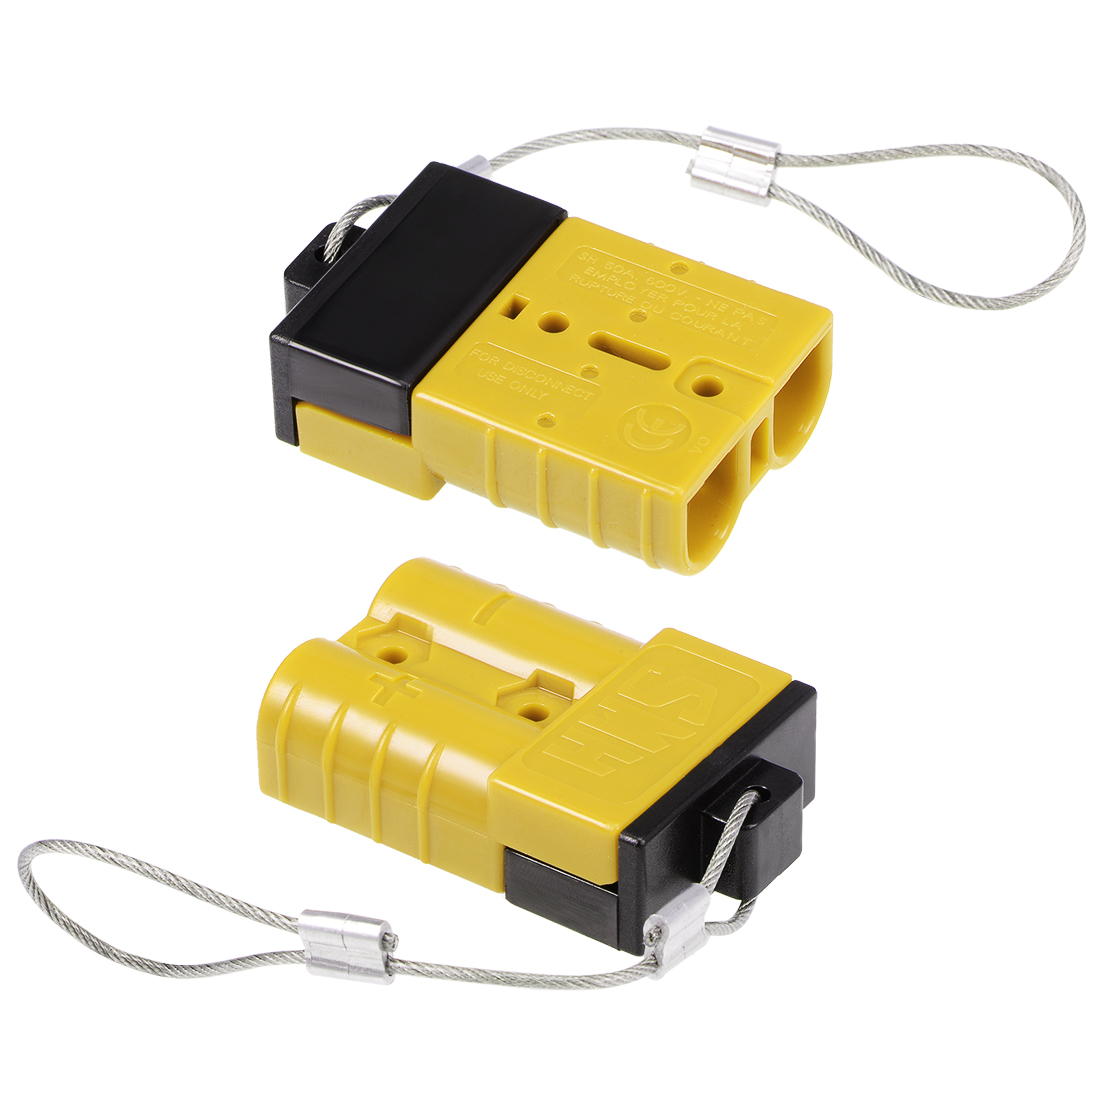 6 Gauge Battery Quick Connect Disconnect 50A Wire Harness Connector Yellow 2pcs